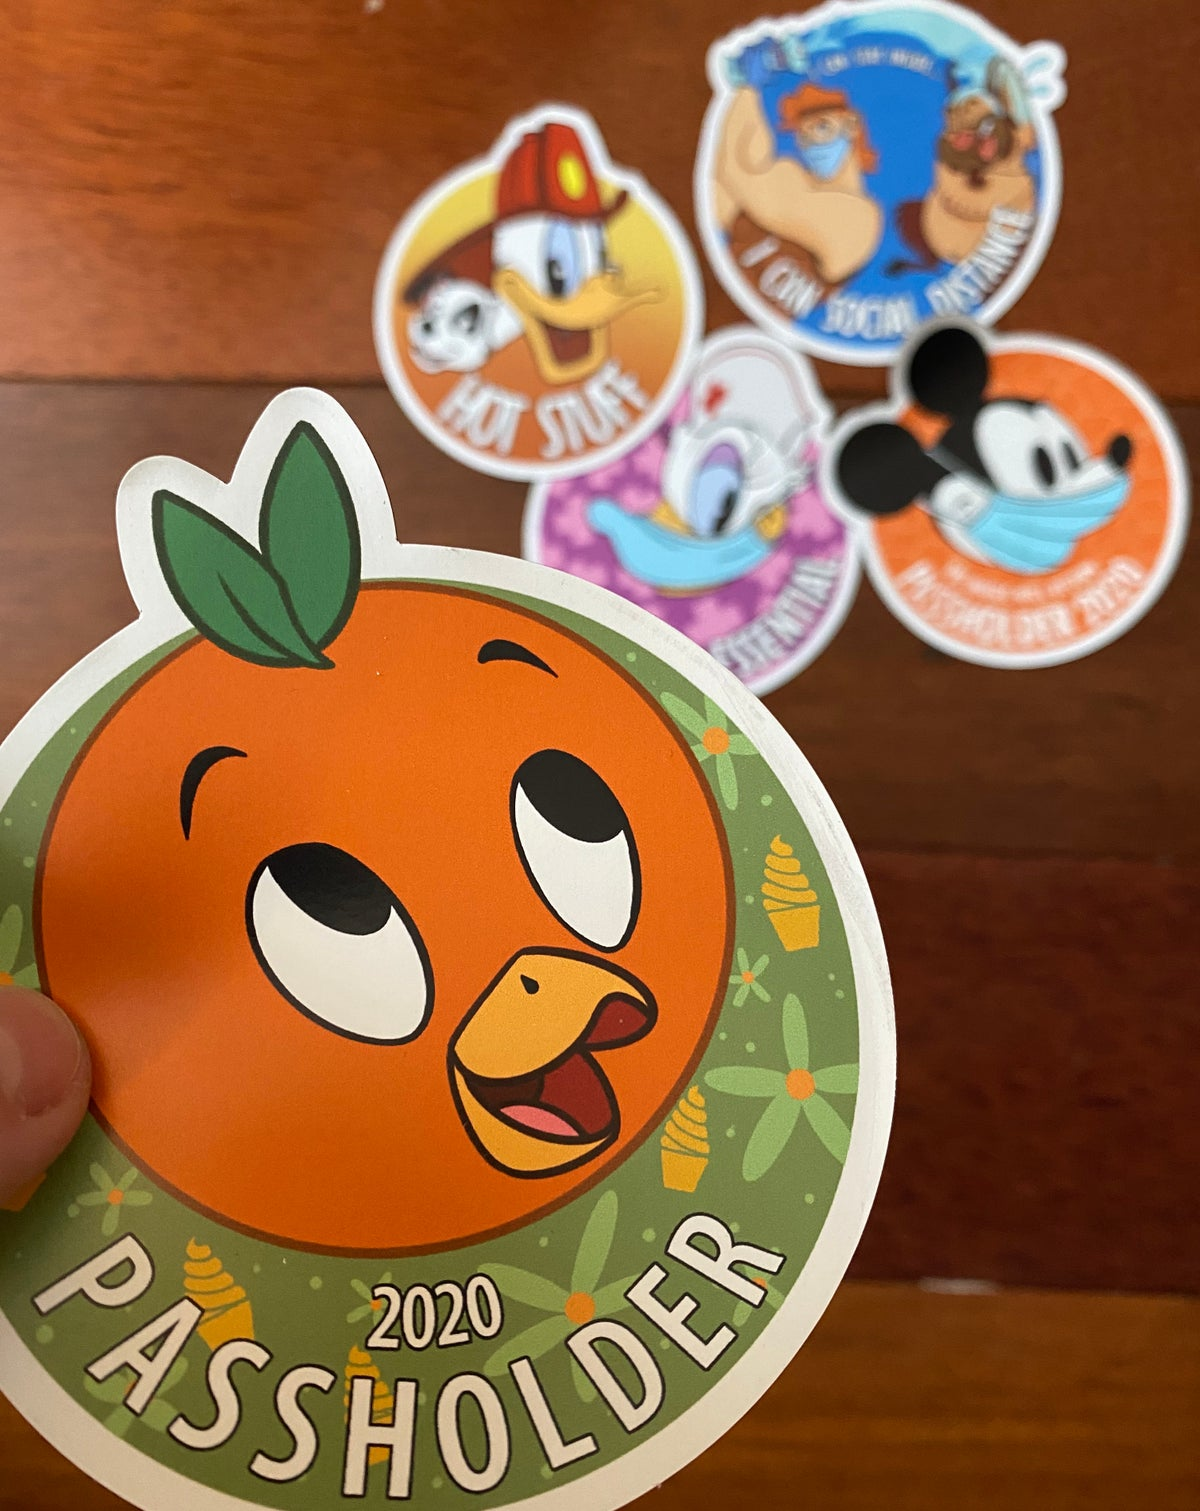 Image of Passholder Magnets and Stickers